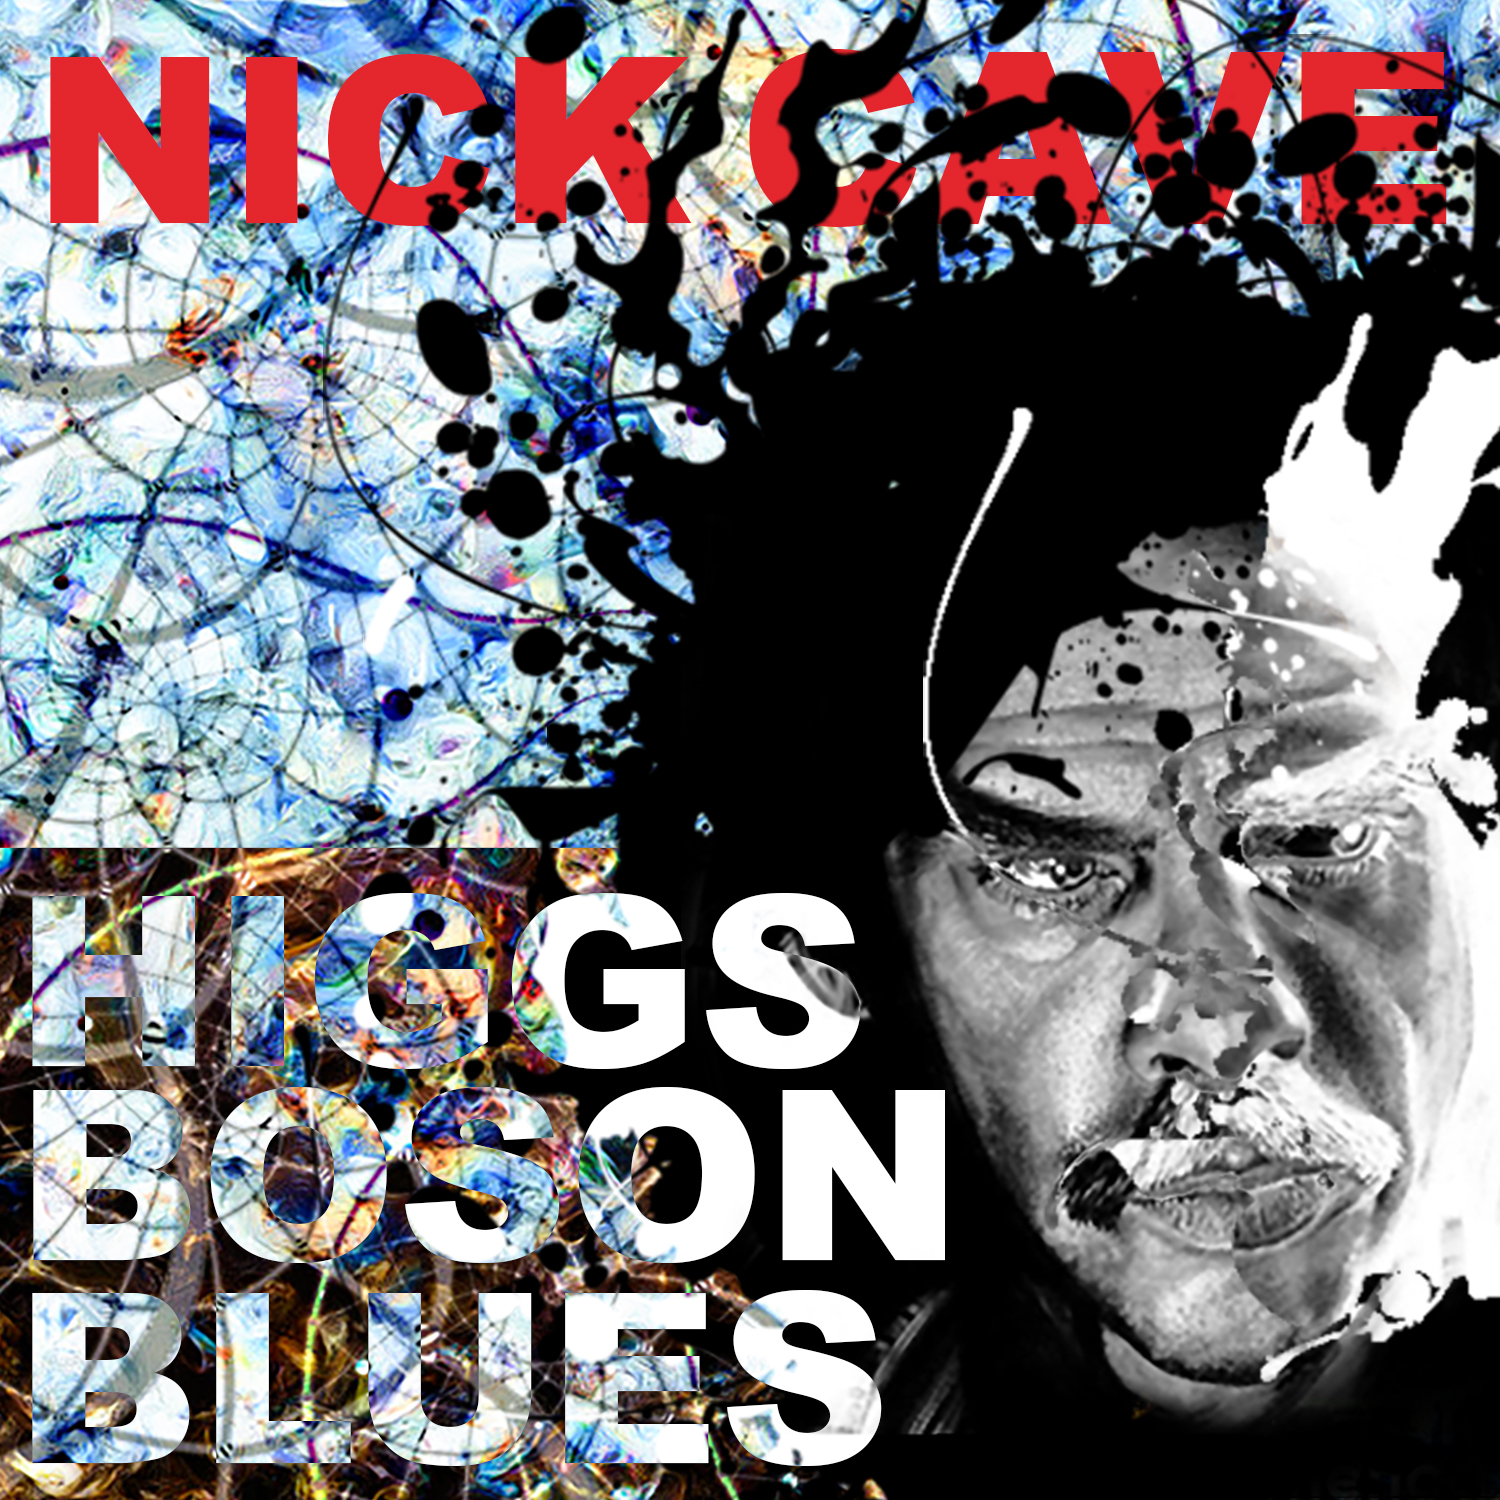 Higgs Boson Blues